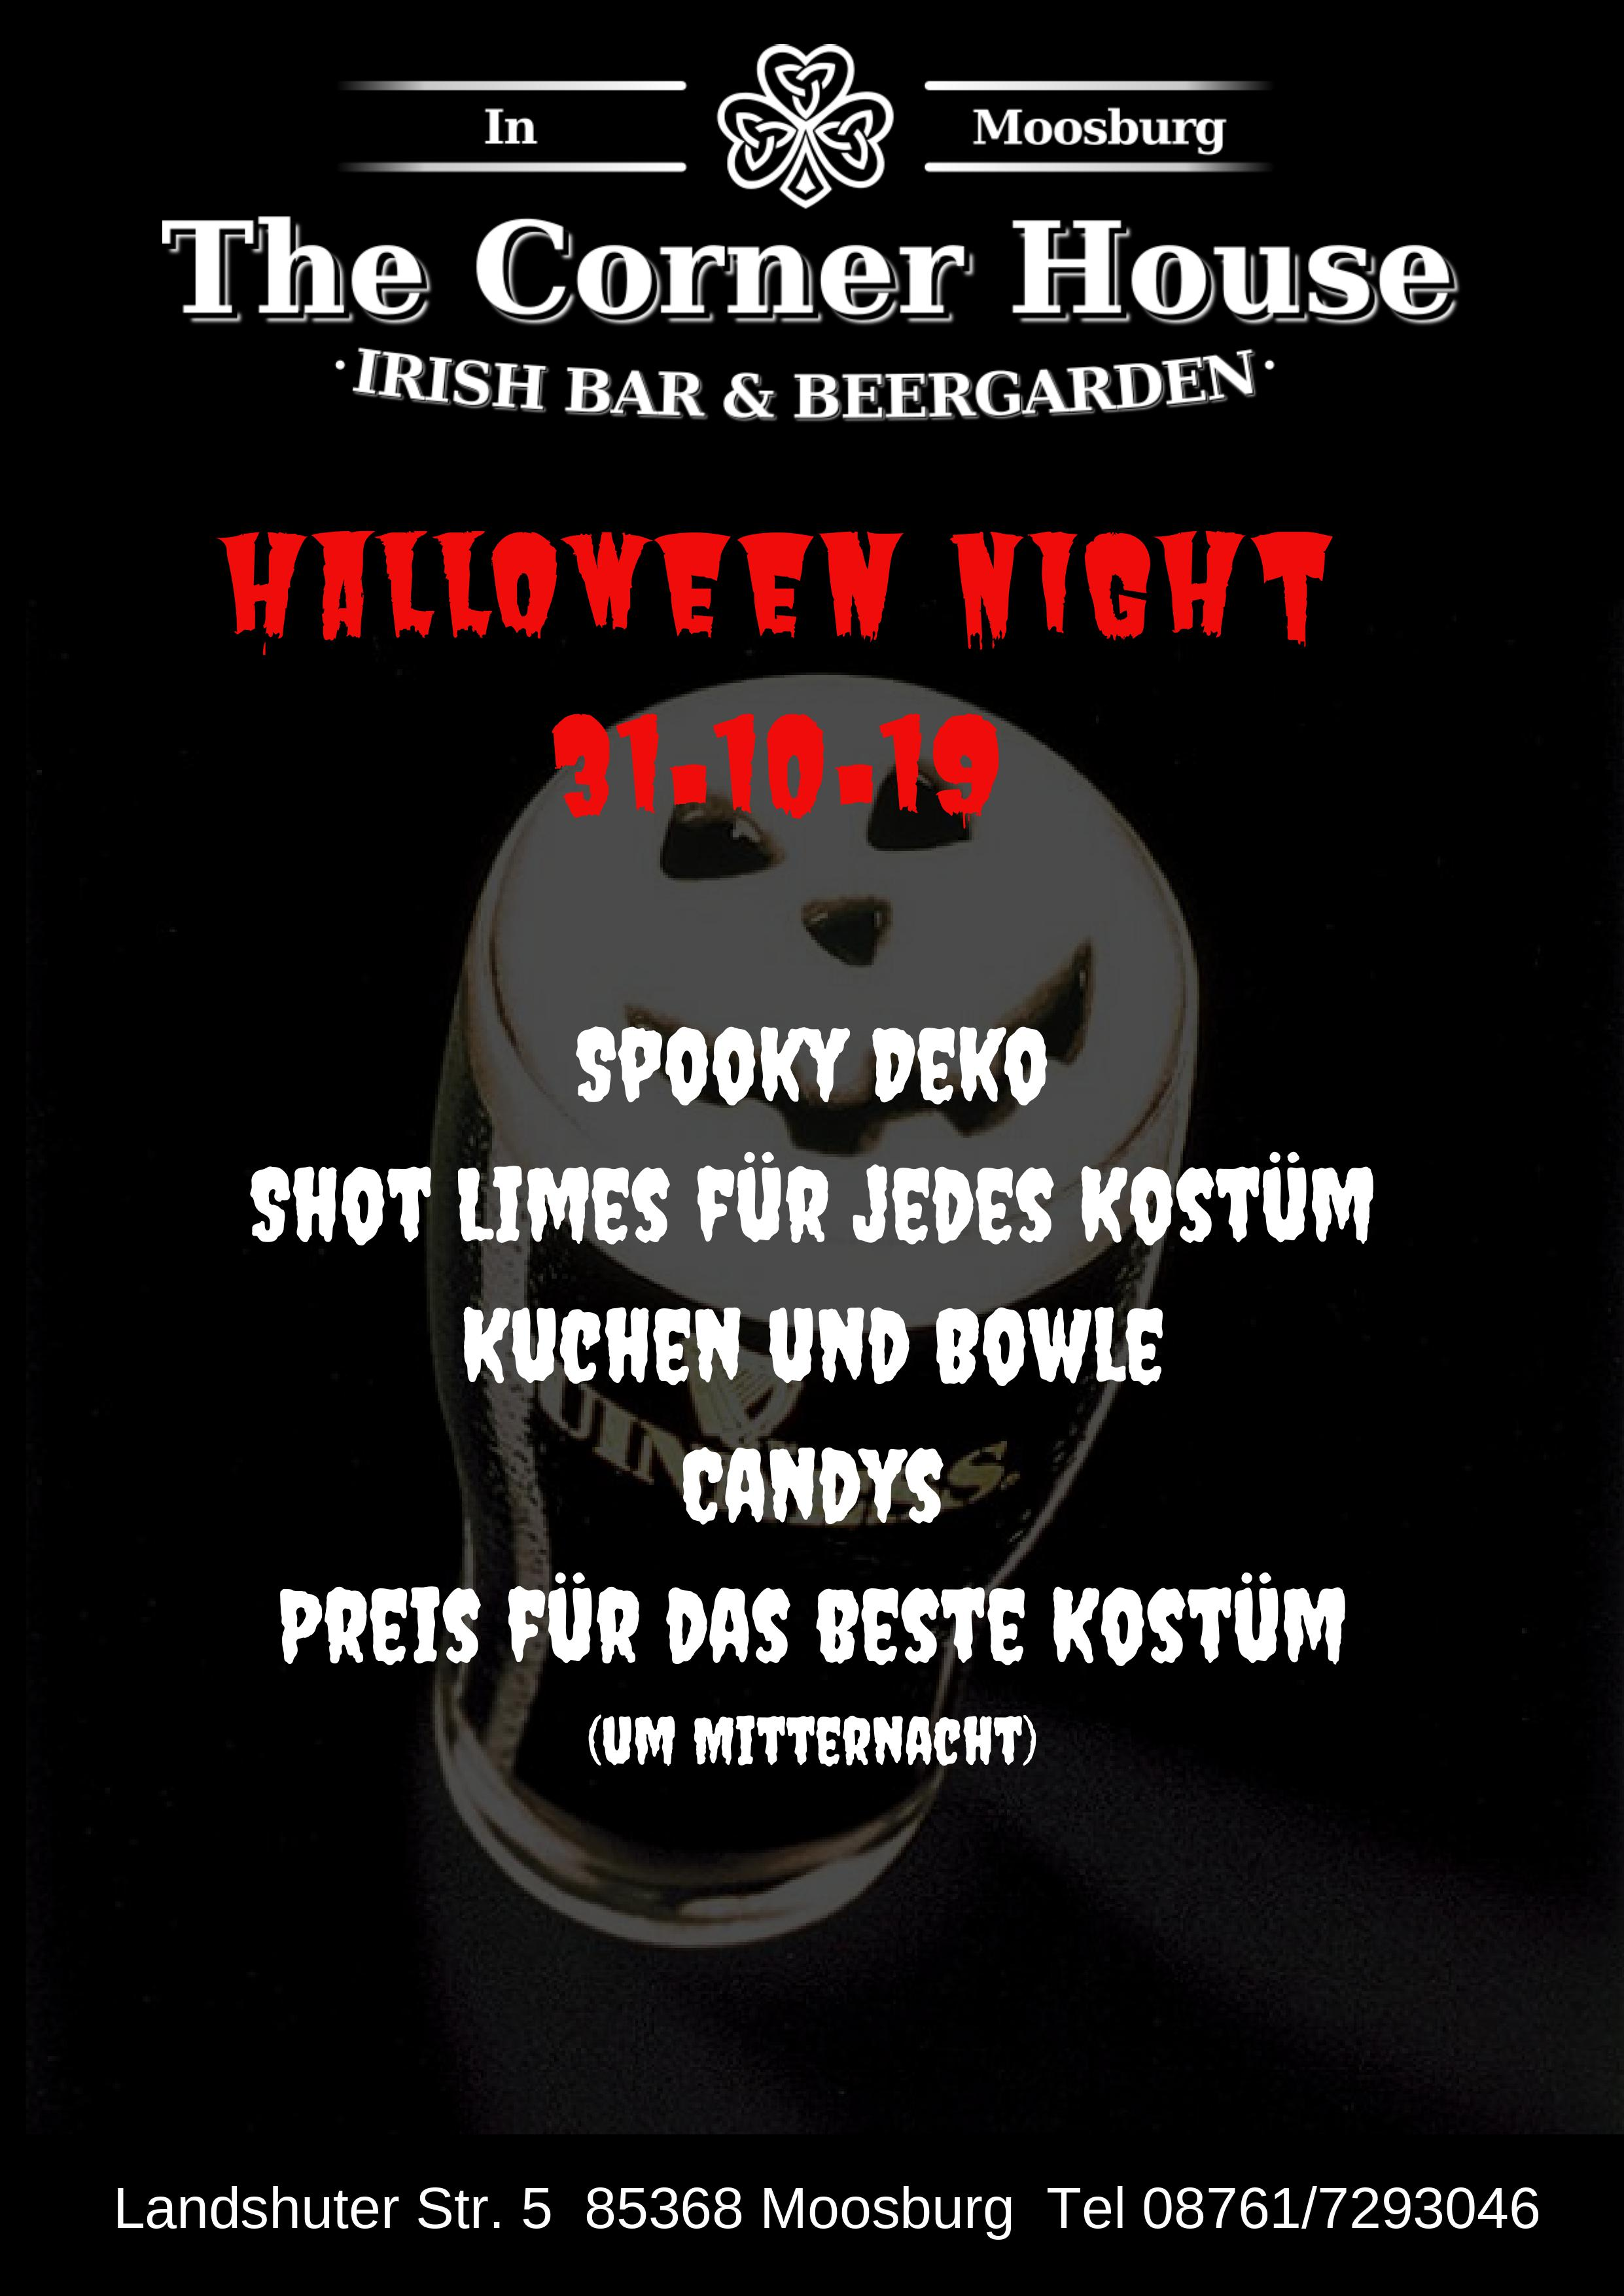 article/Halloween_Night_31.10.19_Flyer_Vfvr2fH.jpg